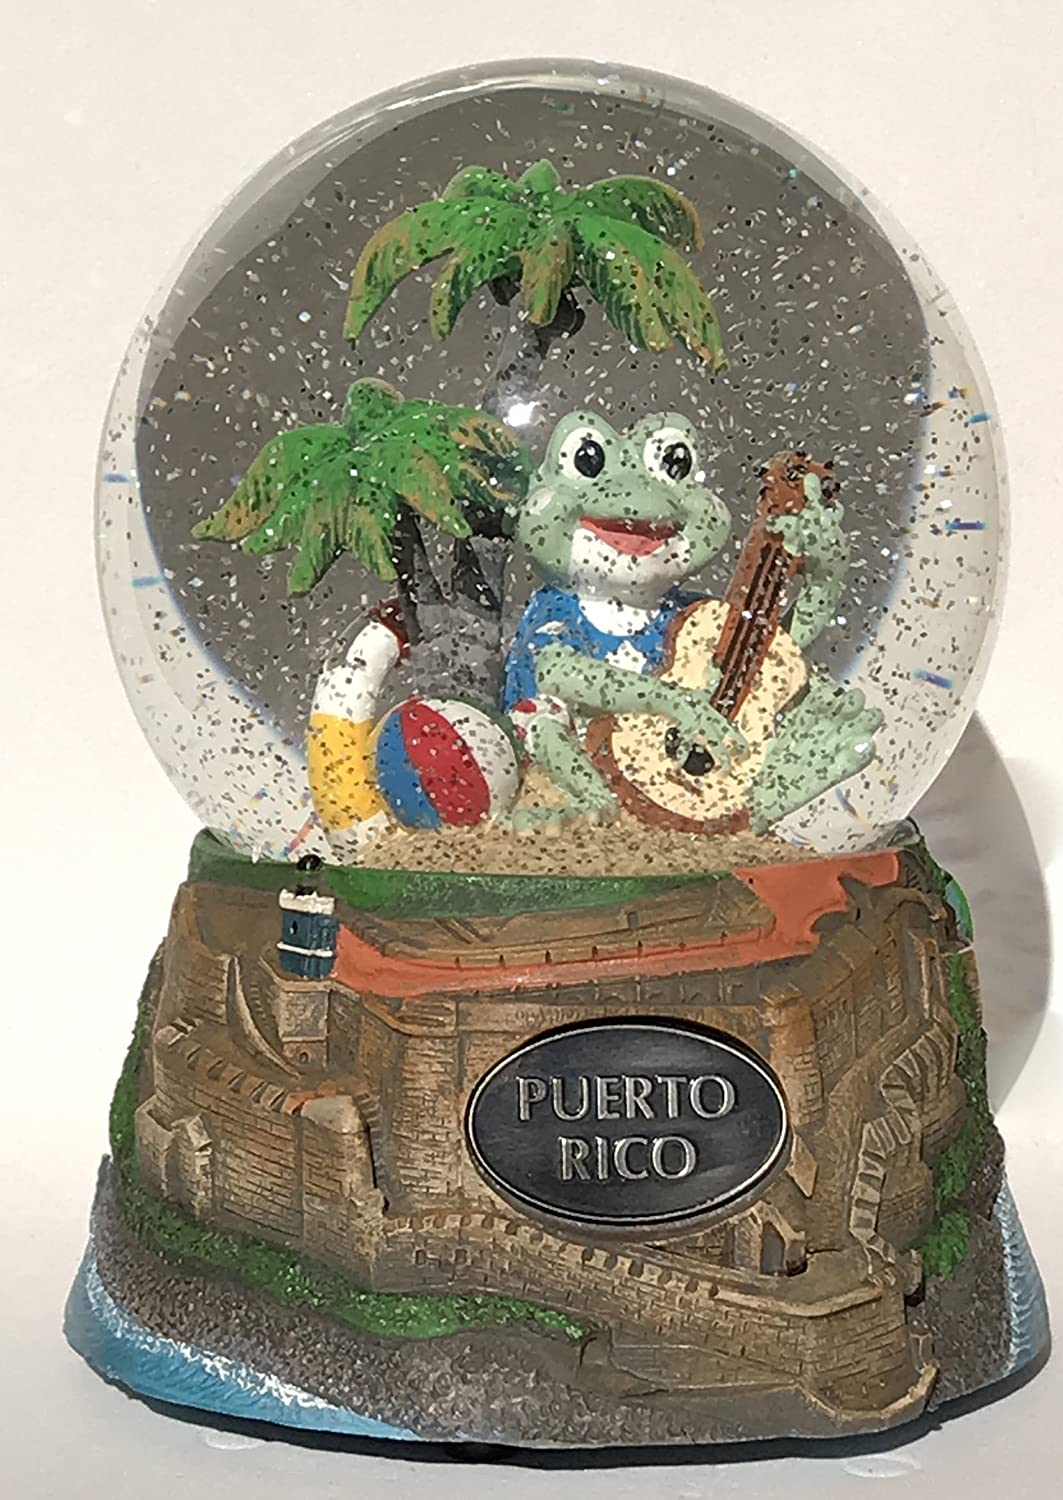 Think Crate Puerto Rico Souvenir El Morro Fortress and Playful Coqui Frogs Musical Snow Globe 100mm Water Ball Music Box